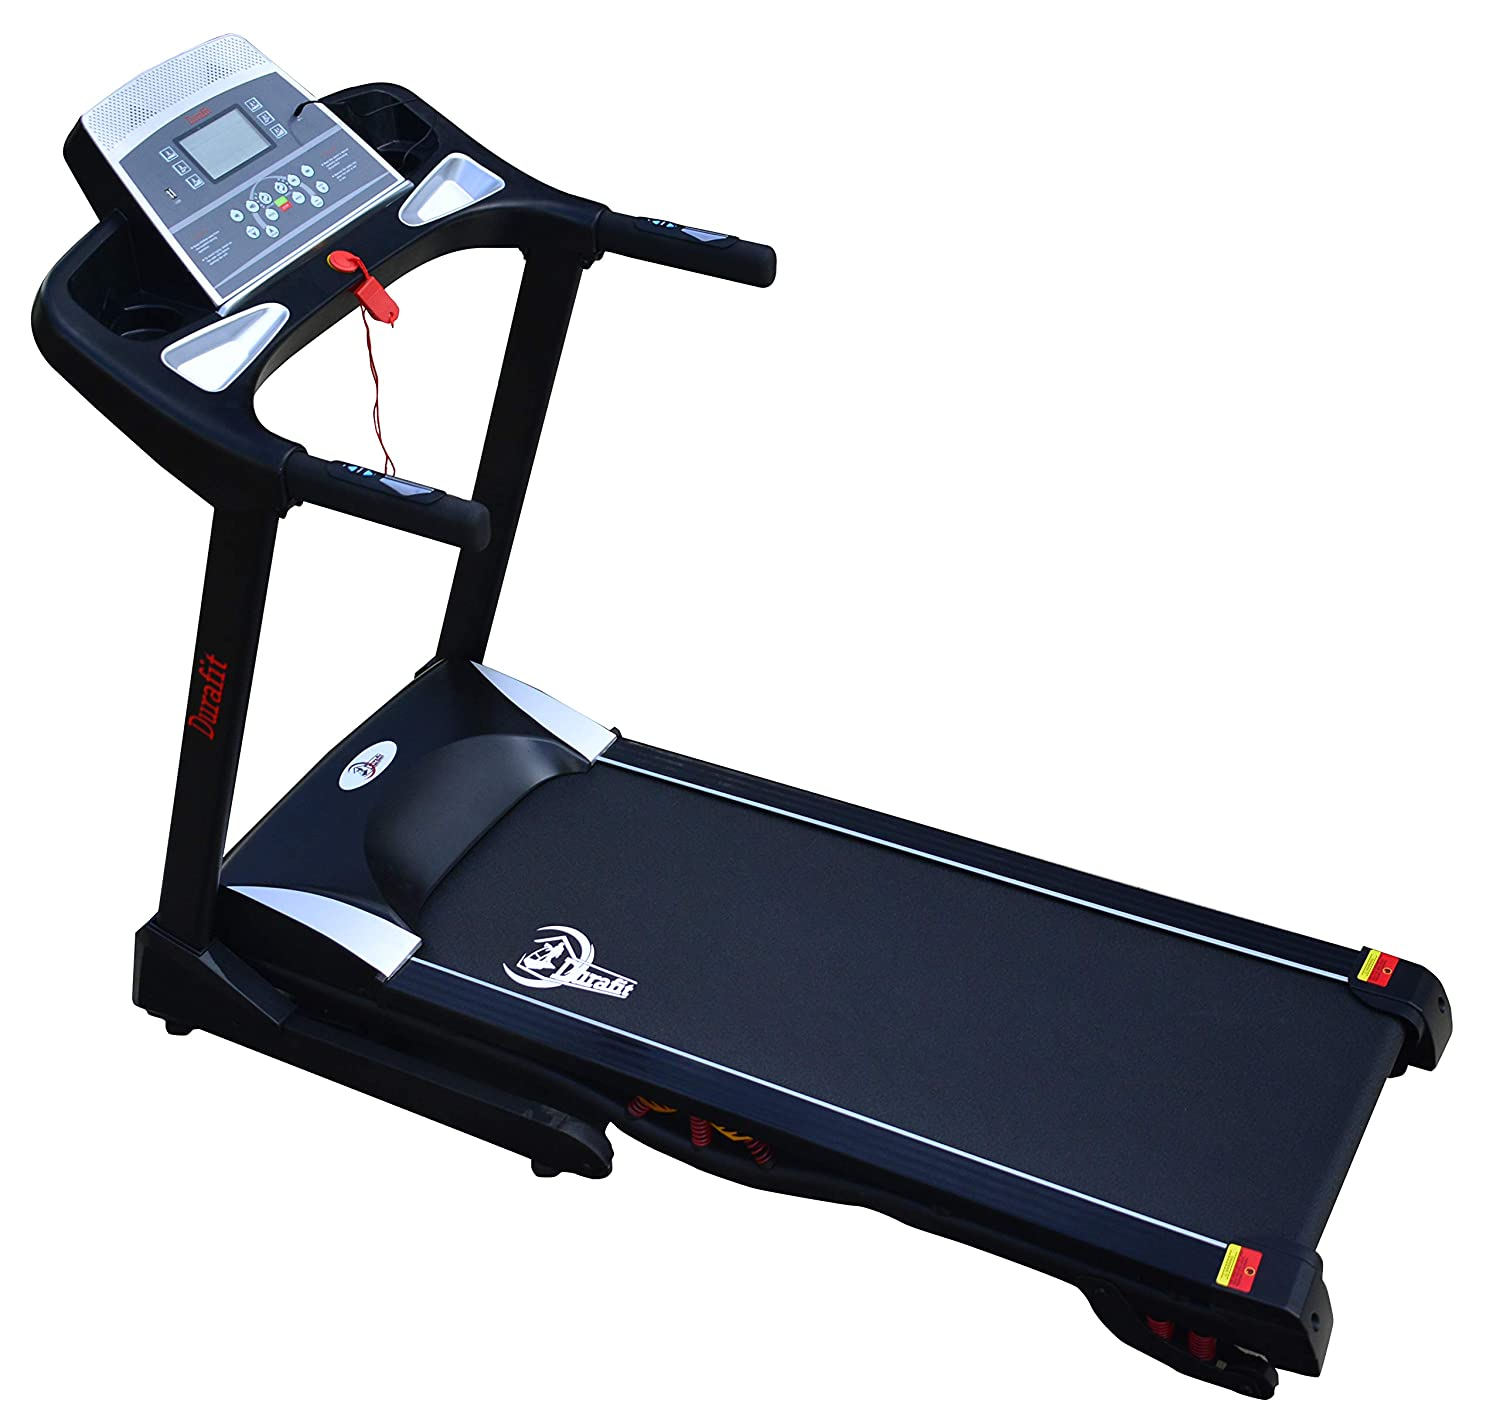 Durafit - Sturdy, Stable and Strong Springo 1.75 HP